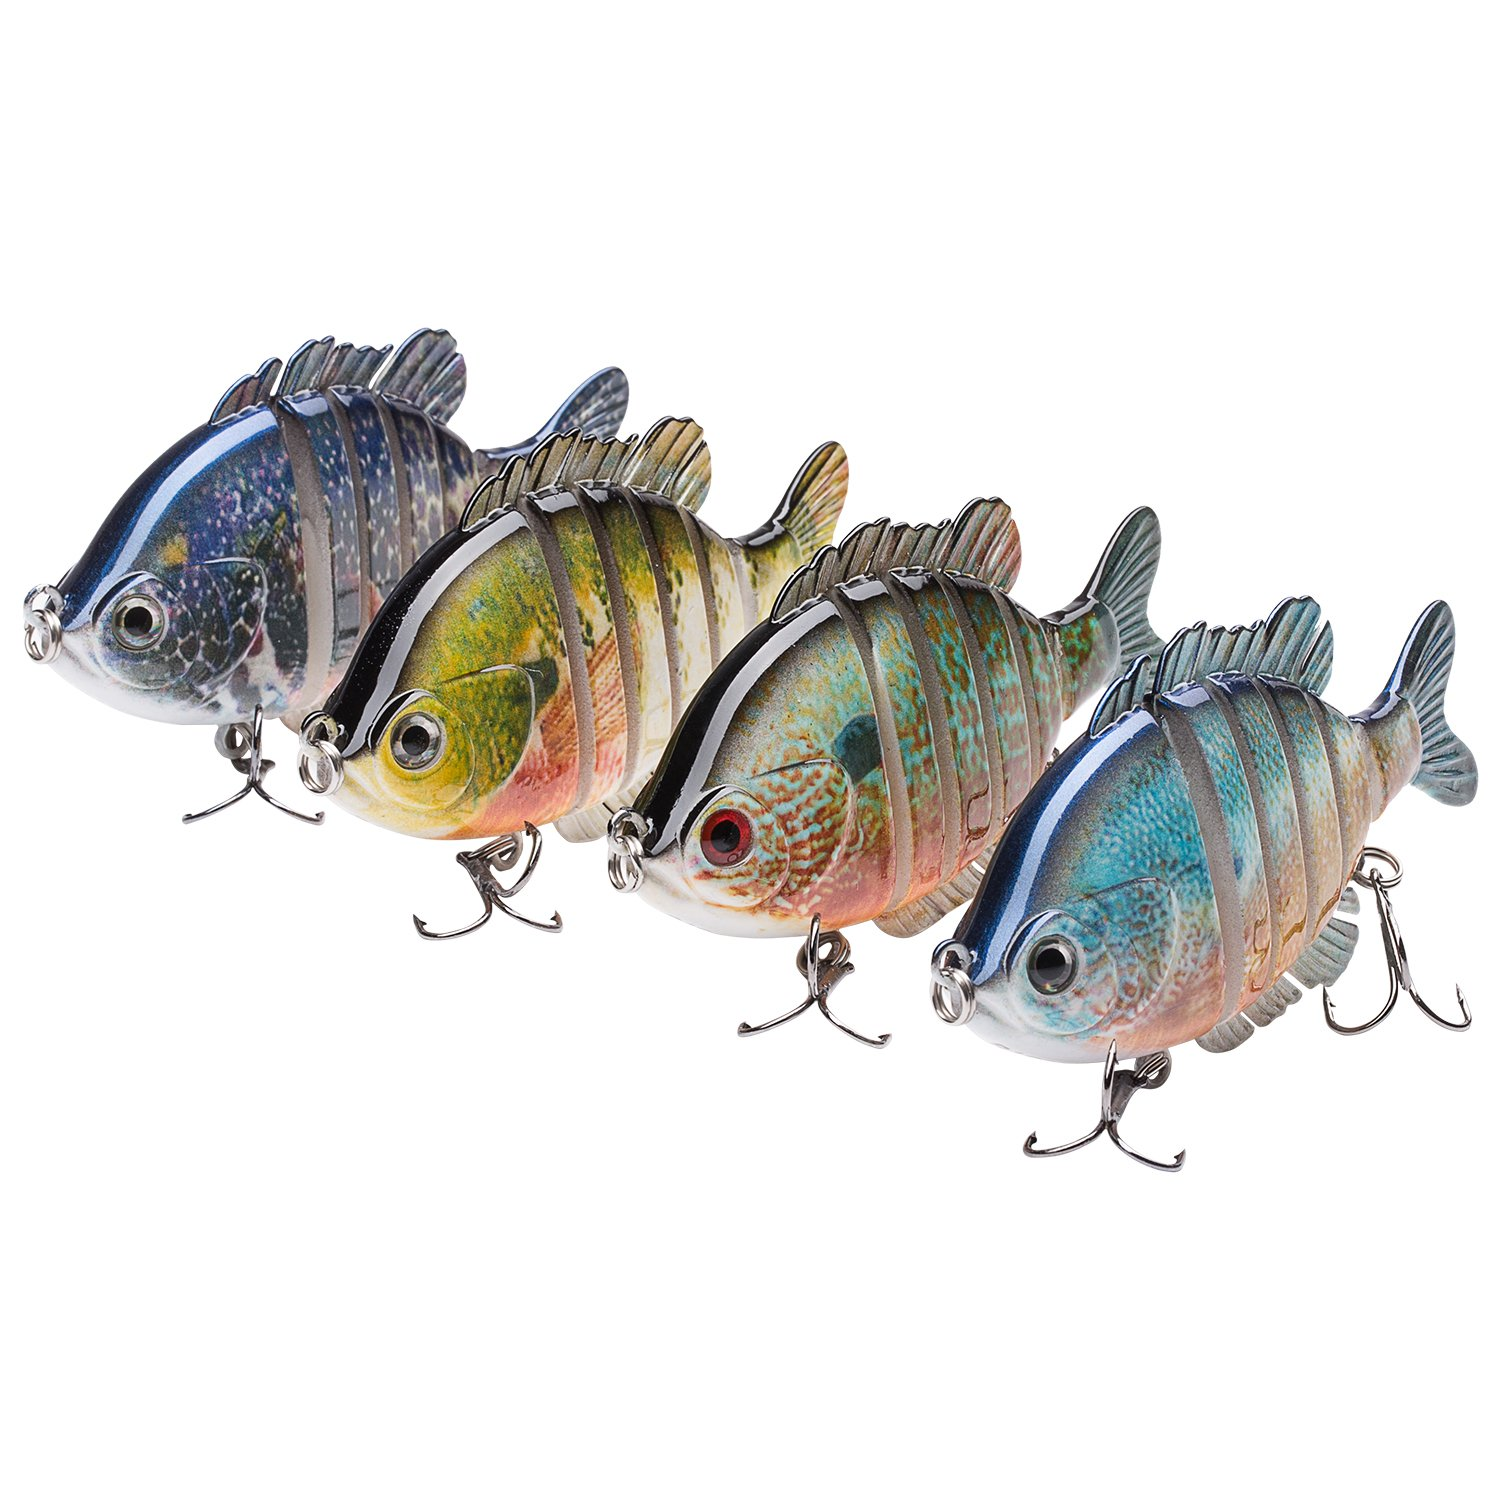 Bassdash SwimPanfish Multi Jointed Panfish Bluegill Swimbaits Topwater Hard Bass Fishing Crank Lure 3.5in/0.85oz (Pack of 4 Colors (BPRL)) by Bassdash